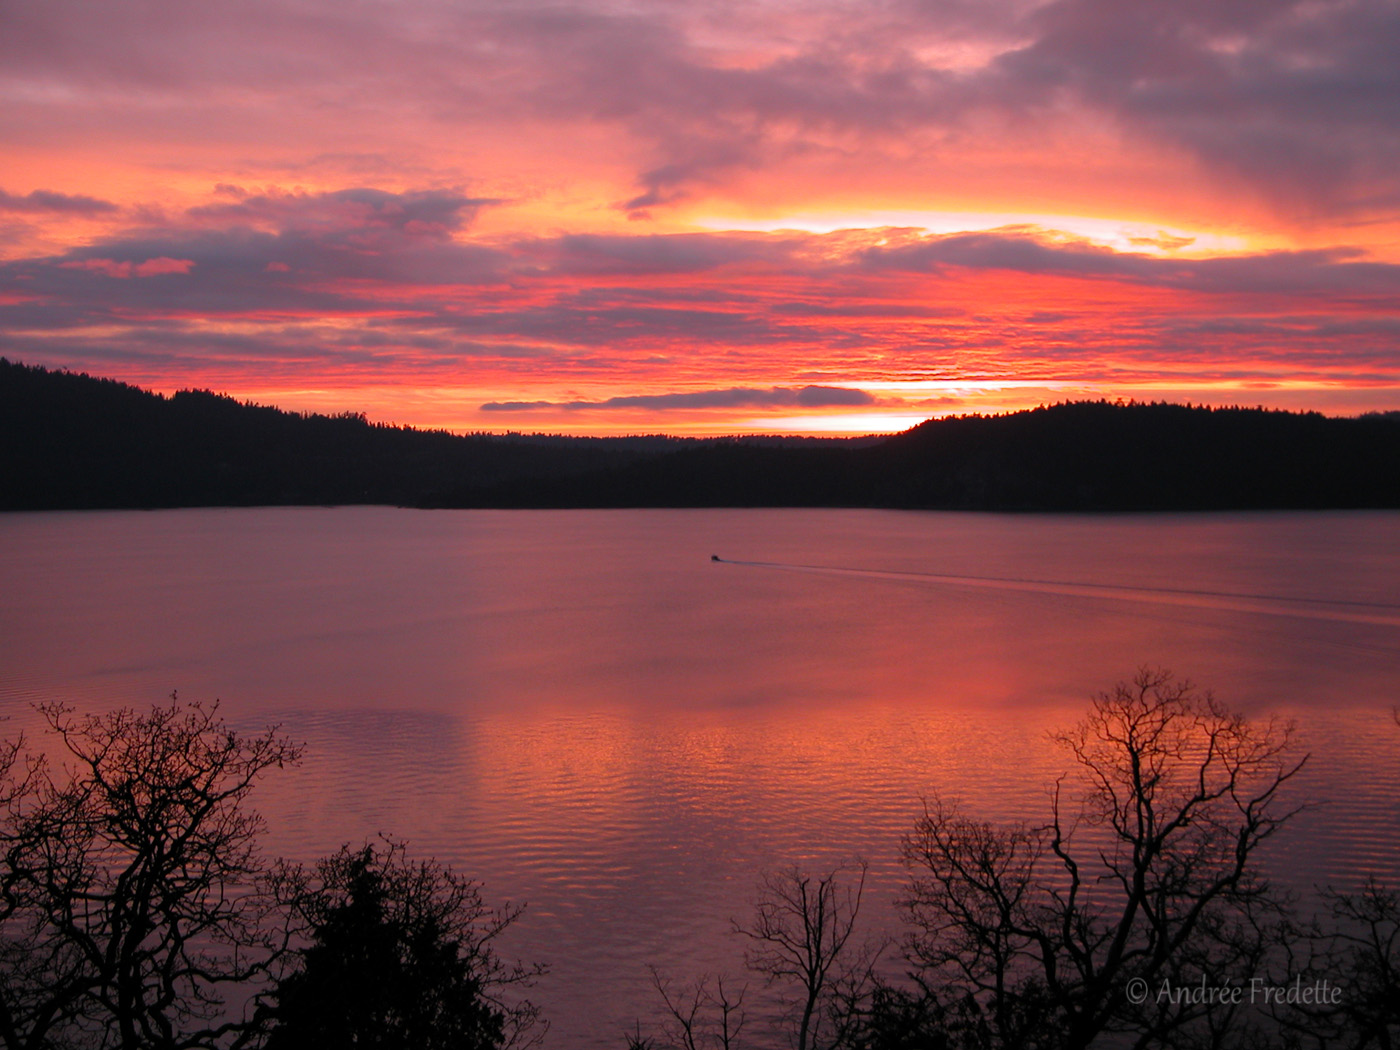 December 2005 sunset with Pender Island in the background. Photo by Andrée Fredette